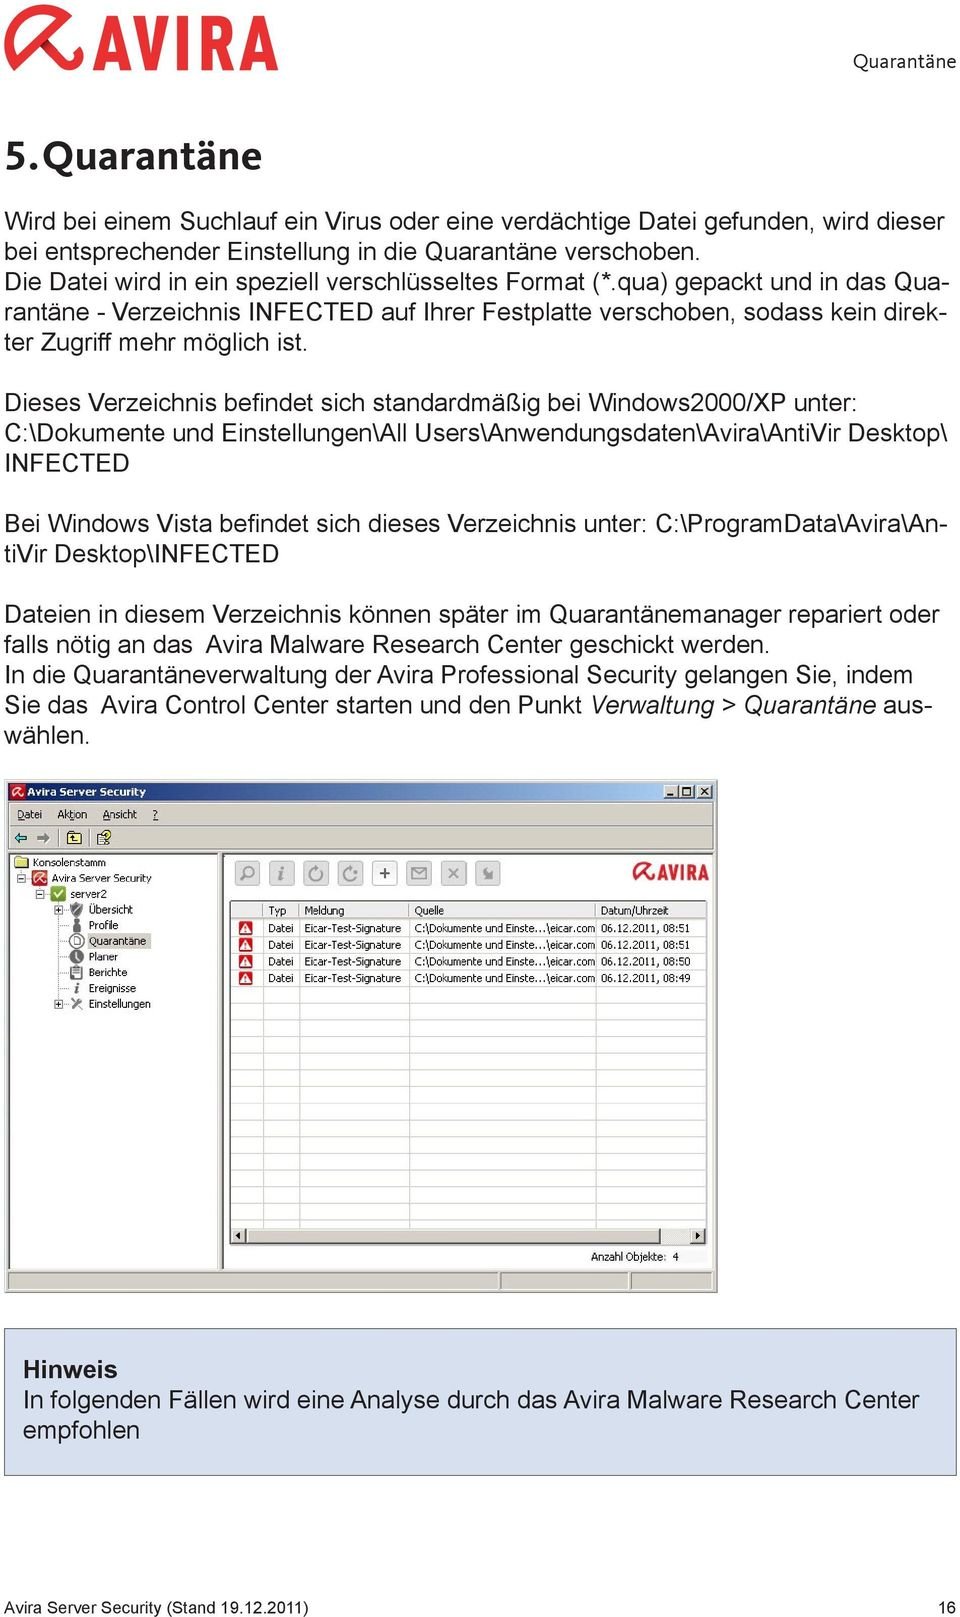 Dieses Verzeichnis befindet sich standardmäßig bei Windows2000/XP unter: C:\Dokumente und Einstellungen\All Users\Anwendungsdaten\Avira\AntiVir Desktop\ INFECTED Bei Windows Vista befindet sich